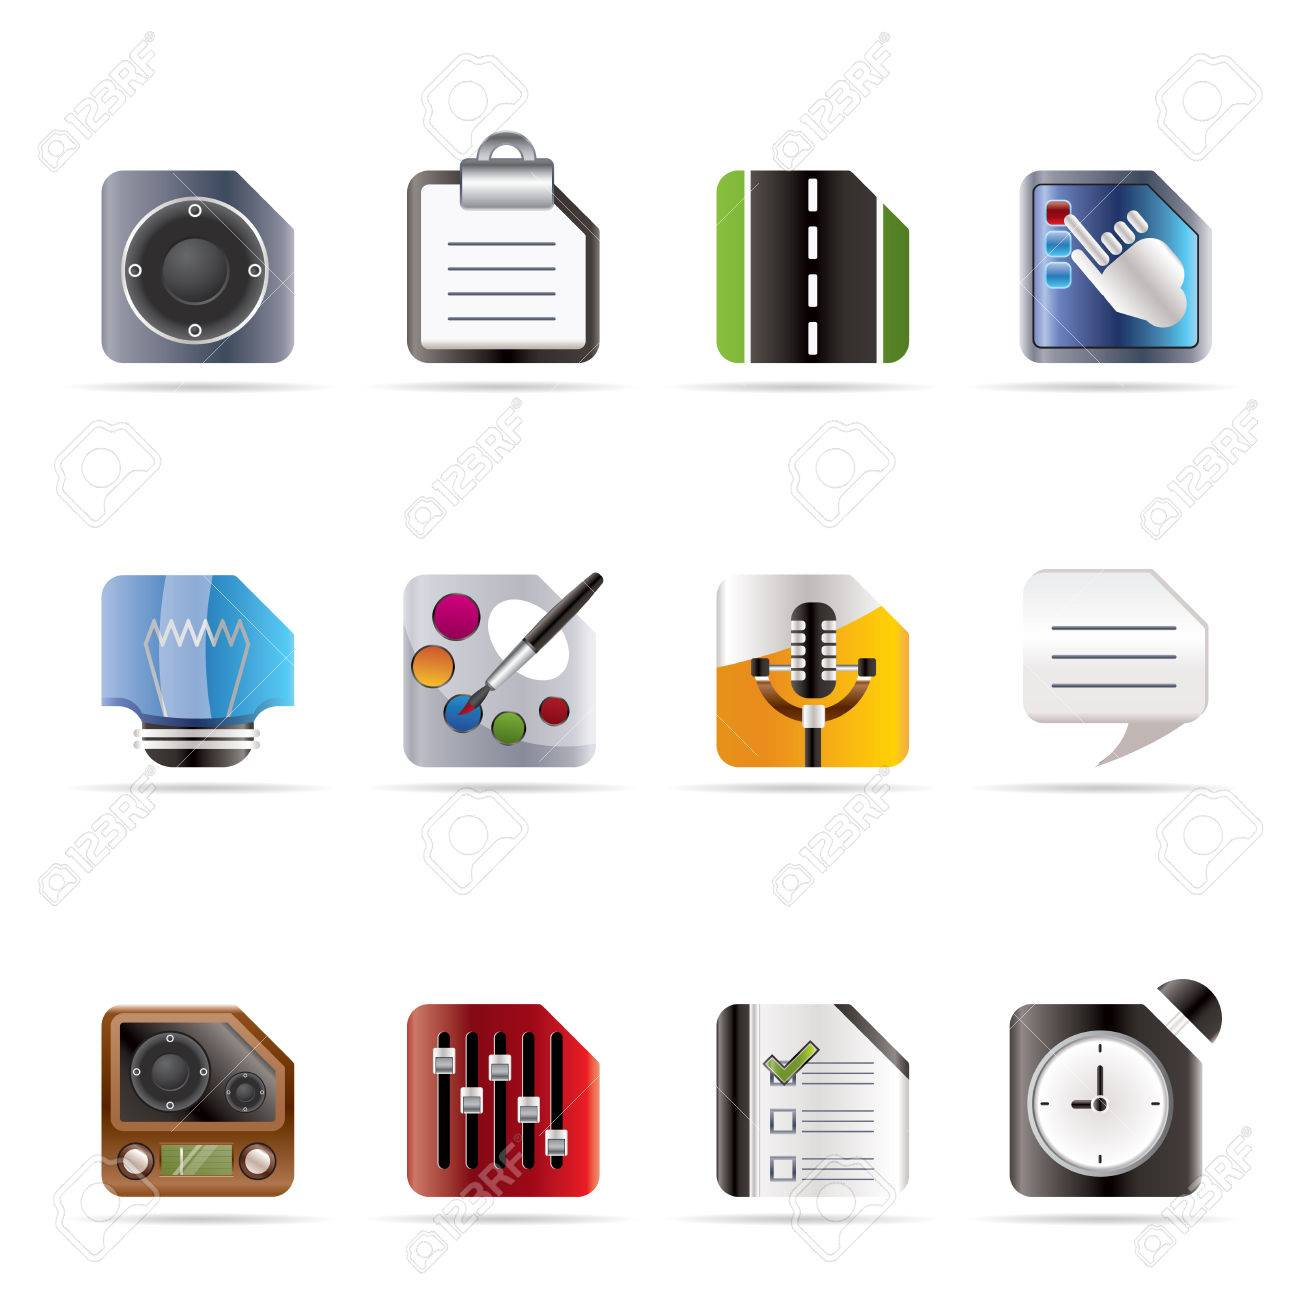 Mobile Phone, Computer and Internet Icons - Vector Icon Set 3 Stock Vector - 6082791